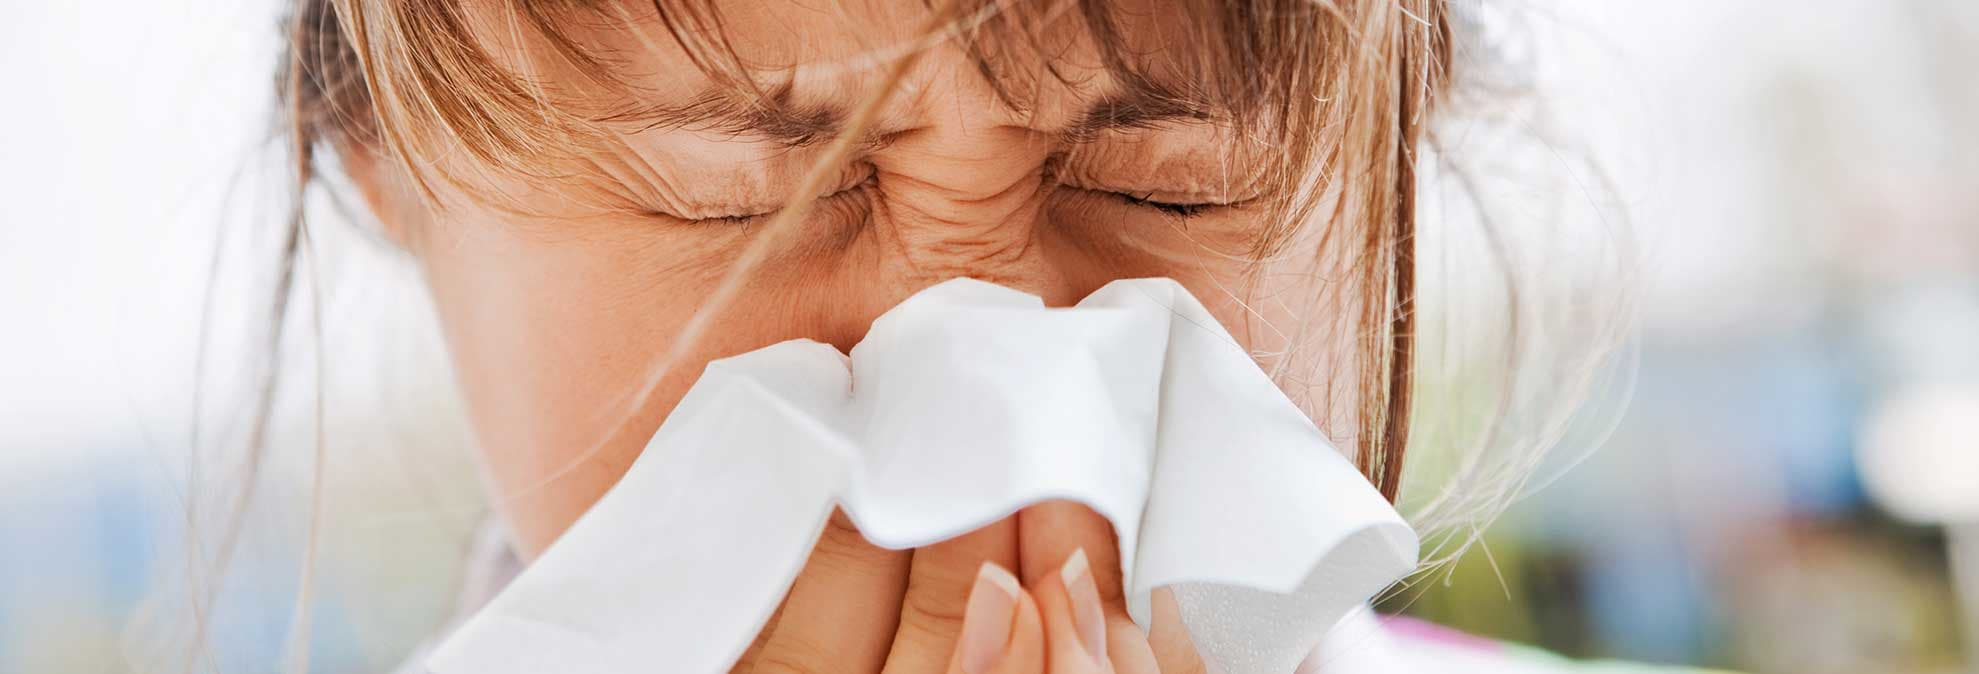 Could A Mold Allergy Be Making You Miserable Consumer